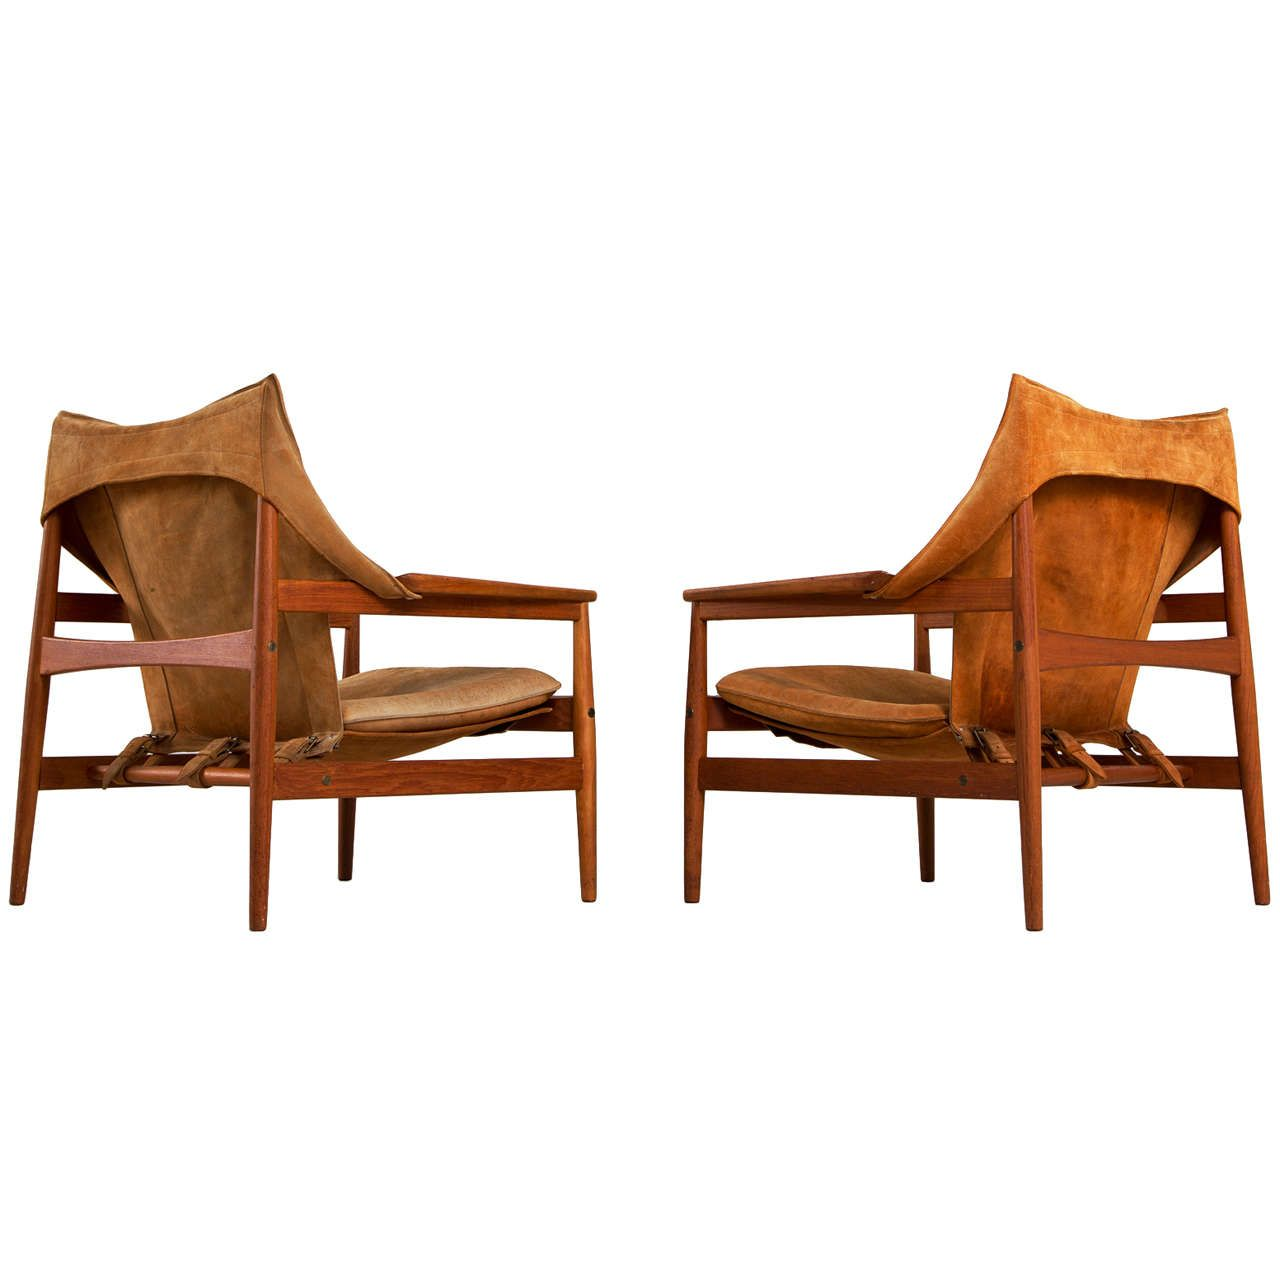 Antique lounge chairs - Extremely Rare Safari Chairs By Hans Olsen